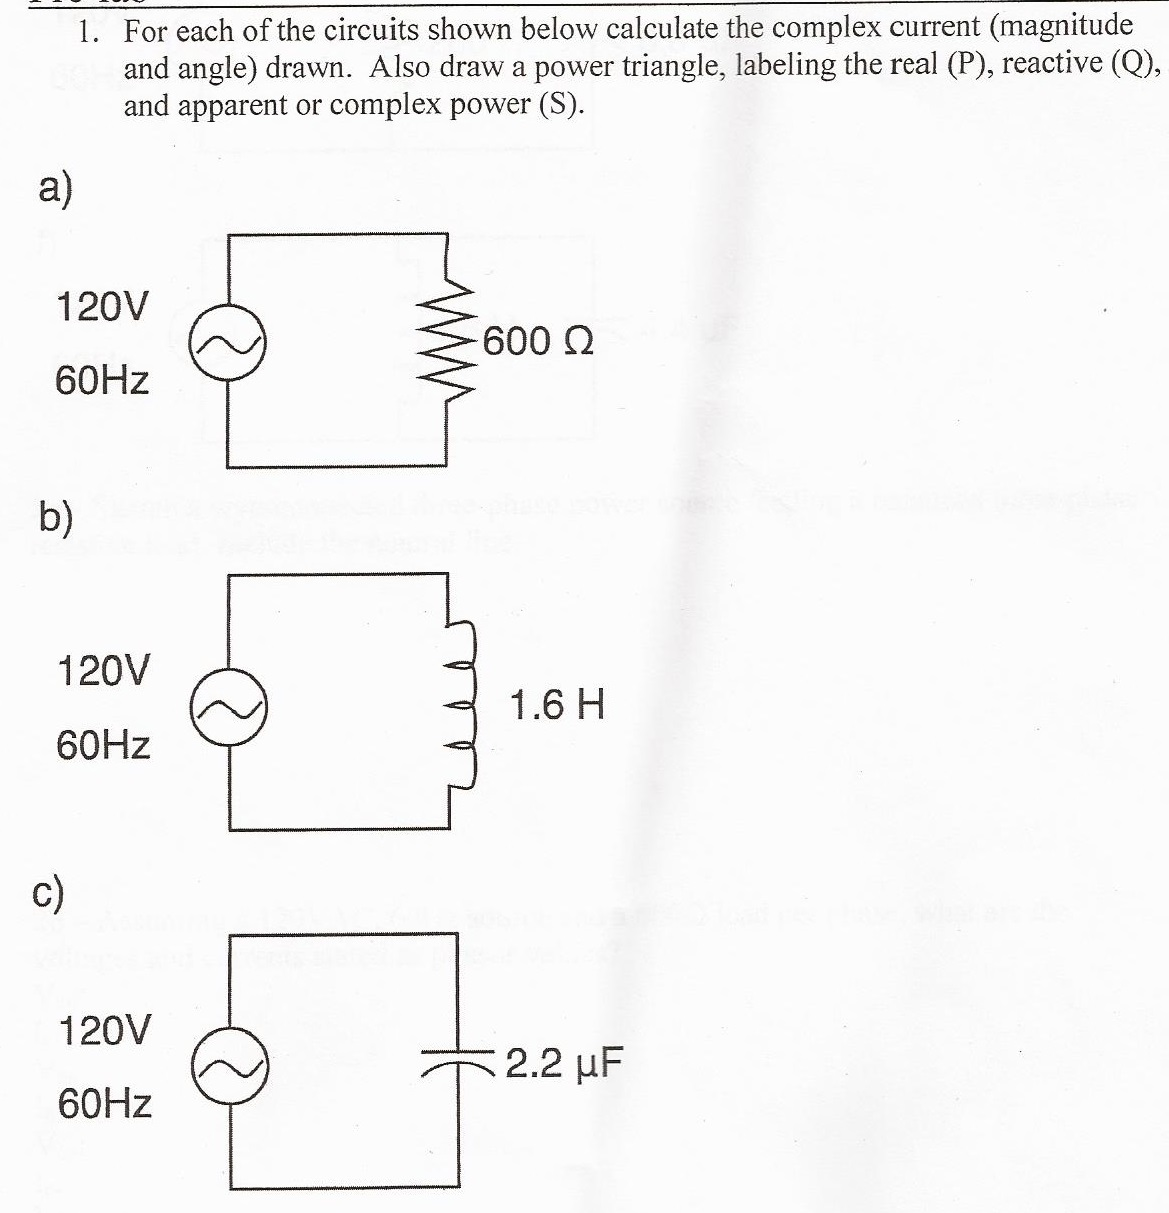 For each of the circuits shown below calculate the